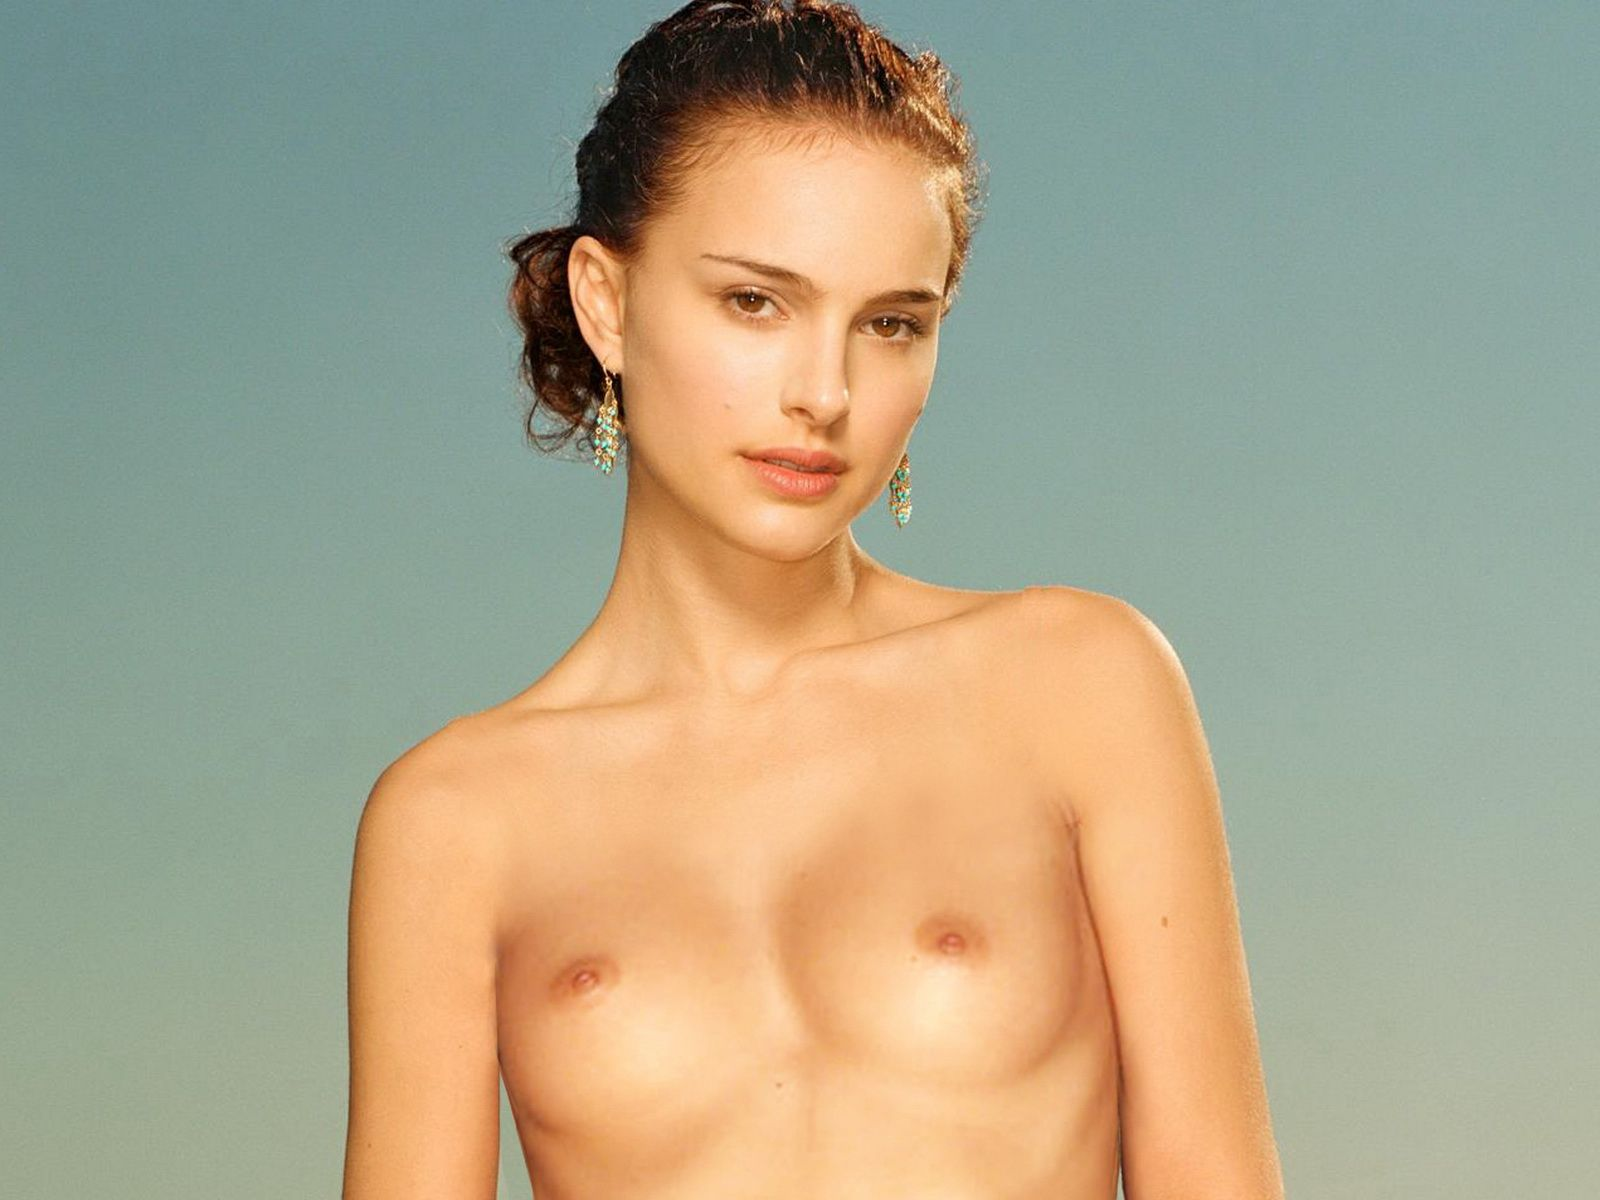 Petite natalie portman young and nude guy boy